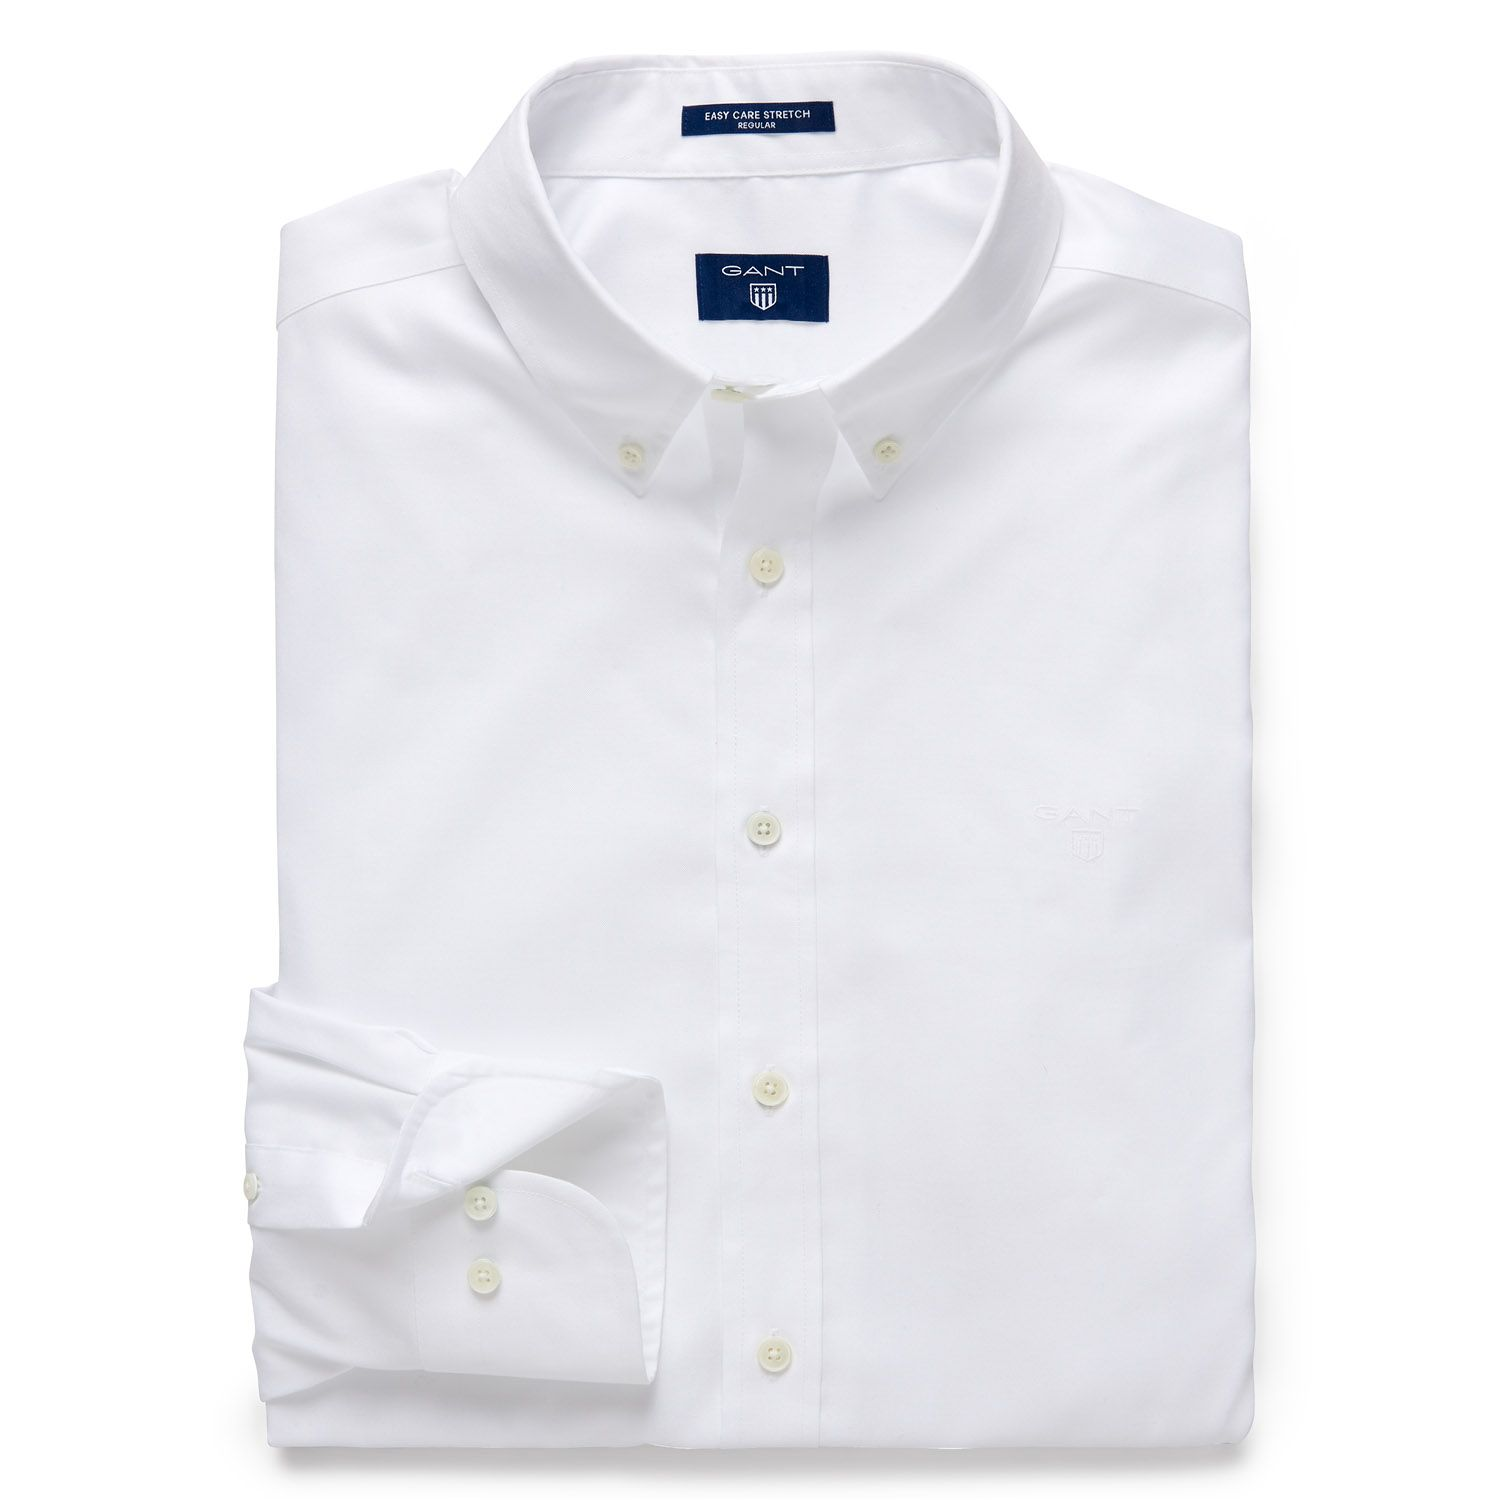 GANT White Regular Fit Pinpoint Oxford Shirt